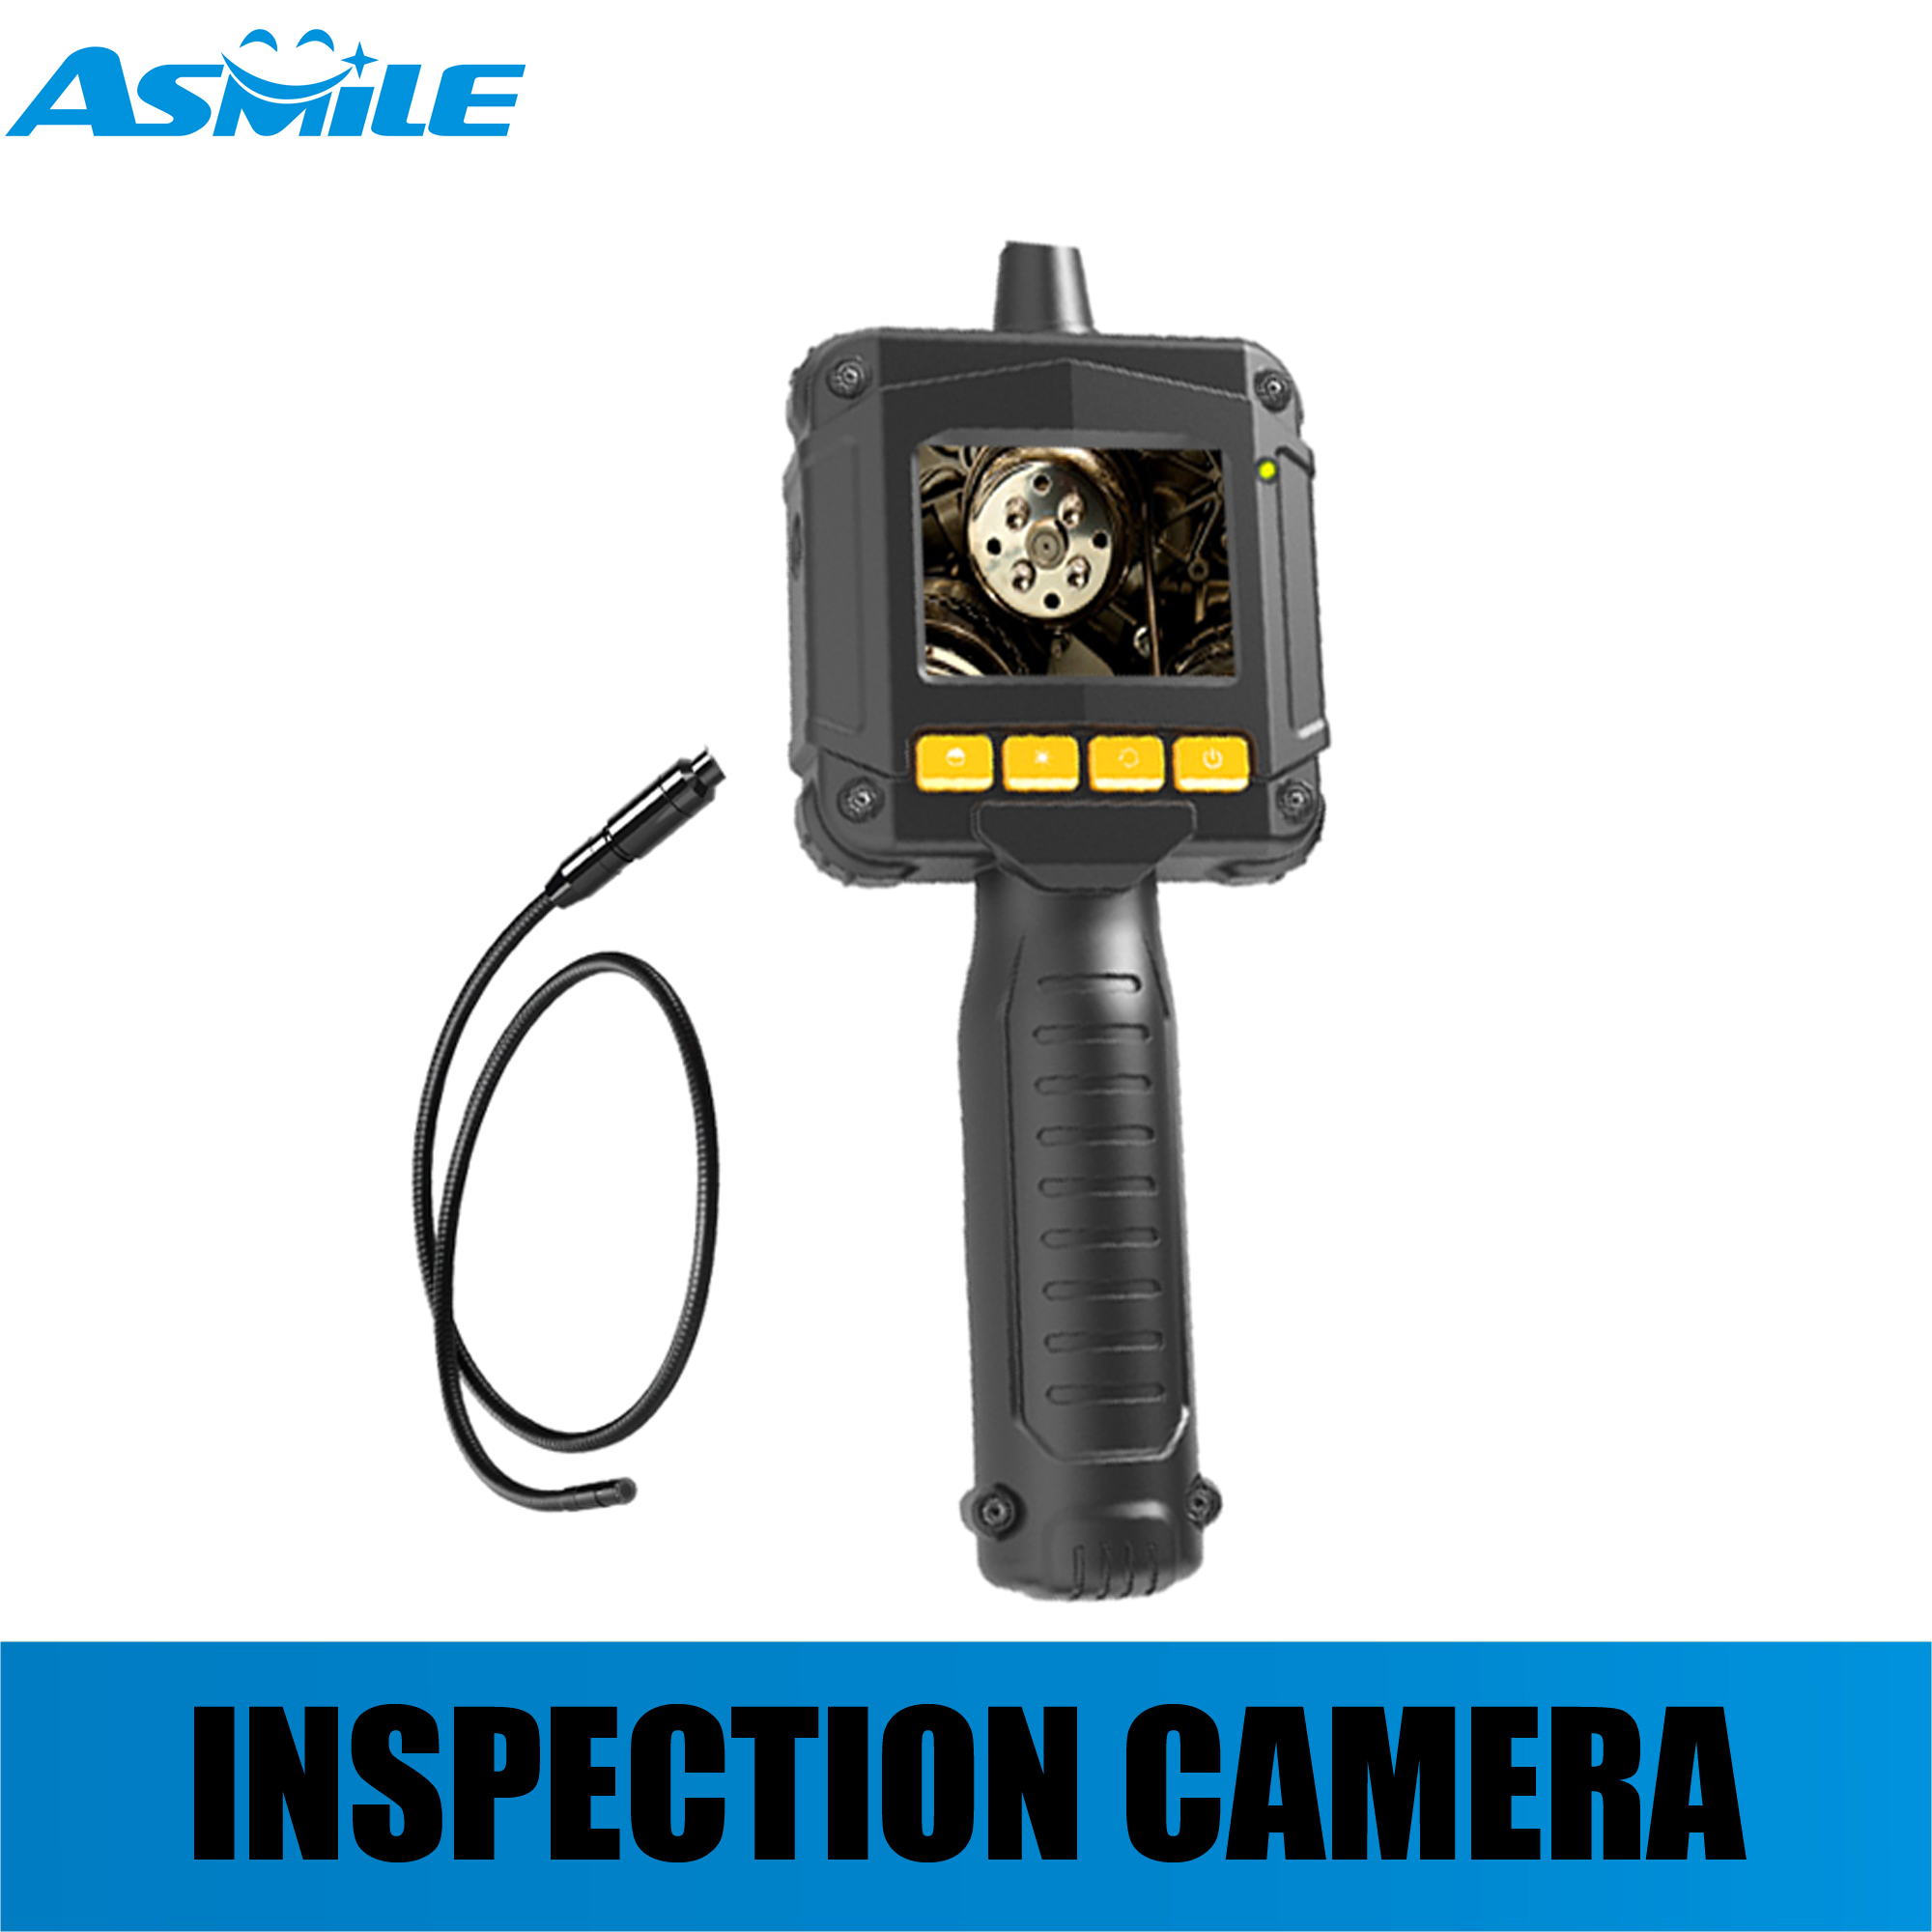 OEM ODM air duct pipe auto inspection snake camera with Image flip function to view in diferent angles image